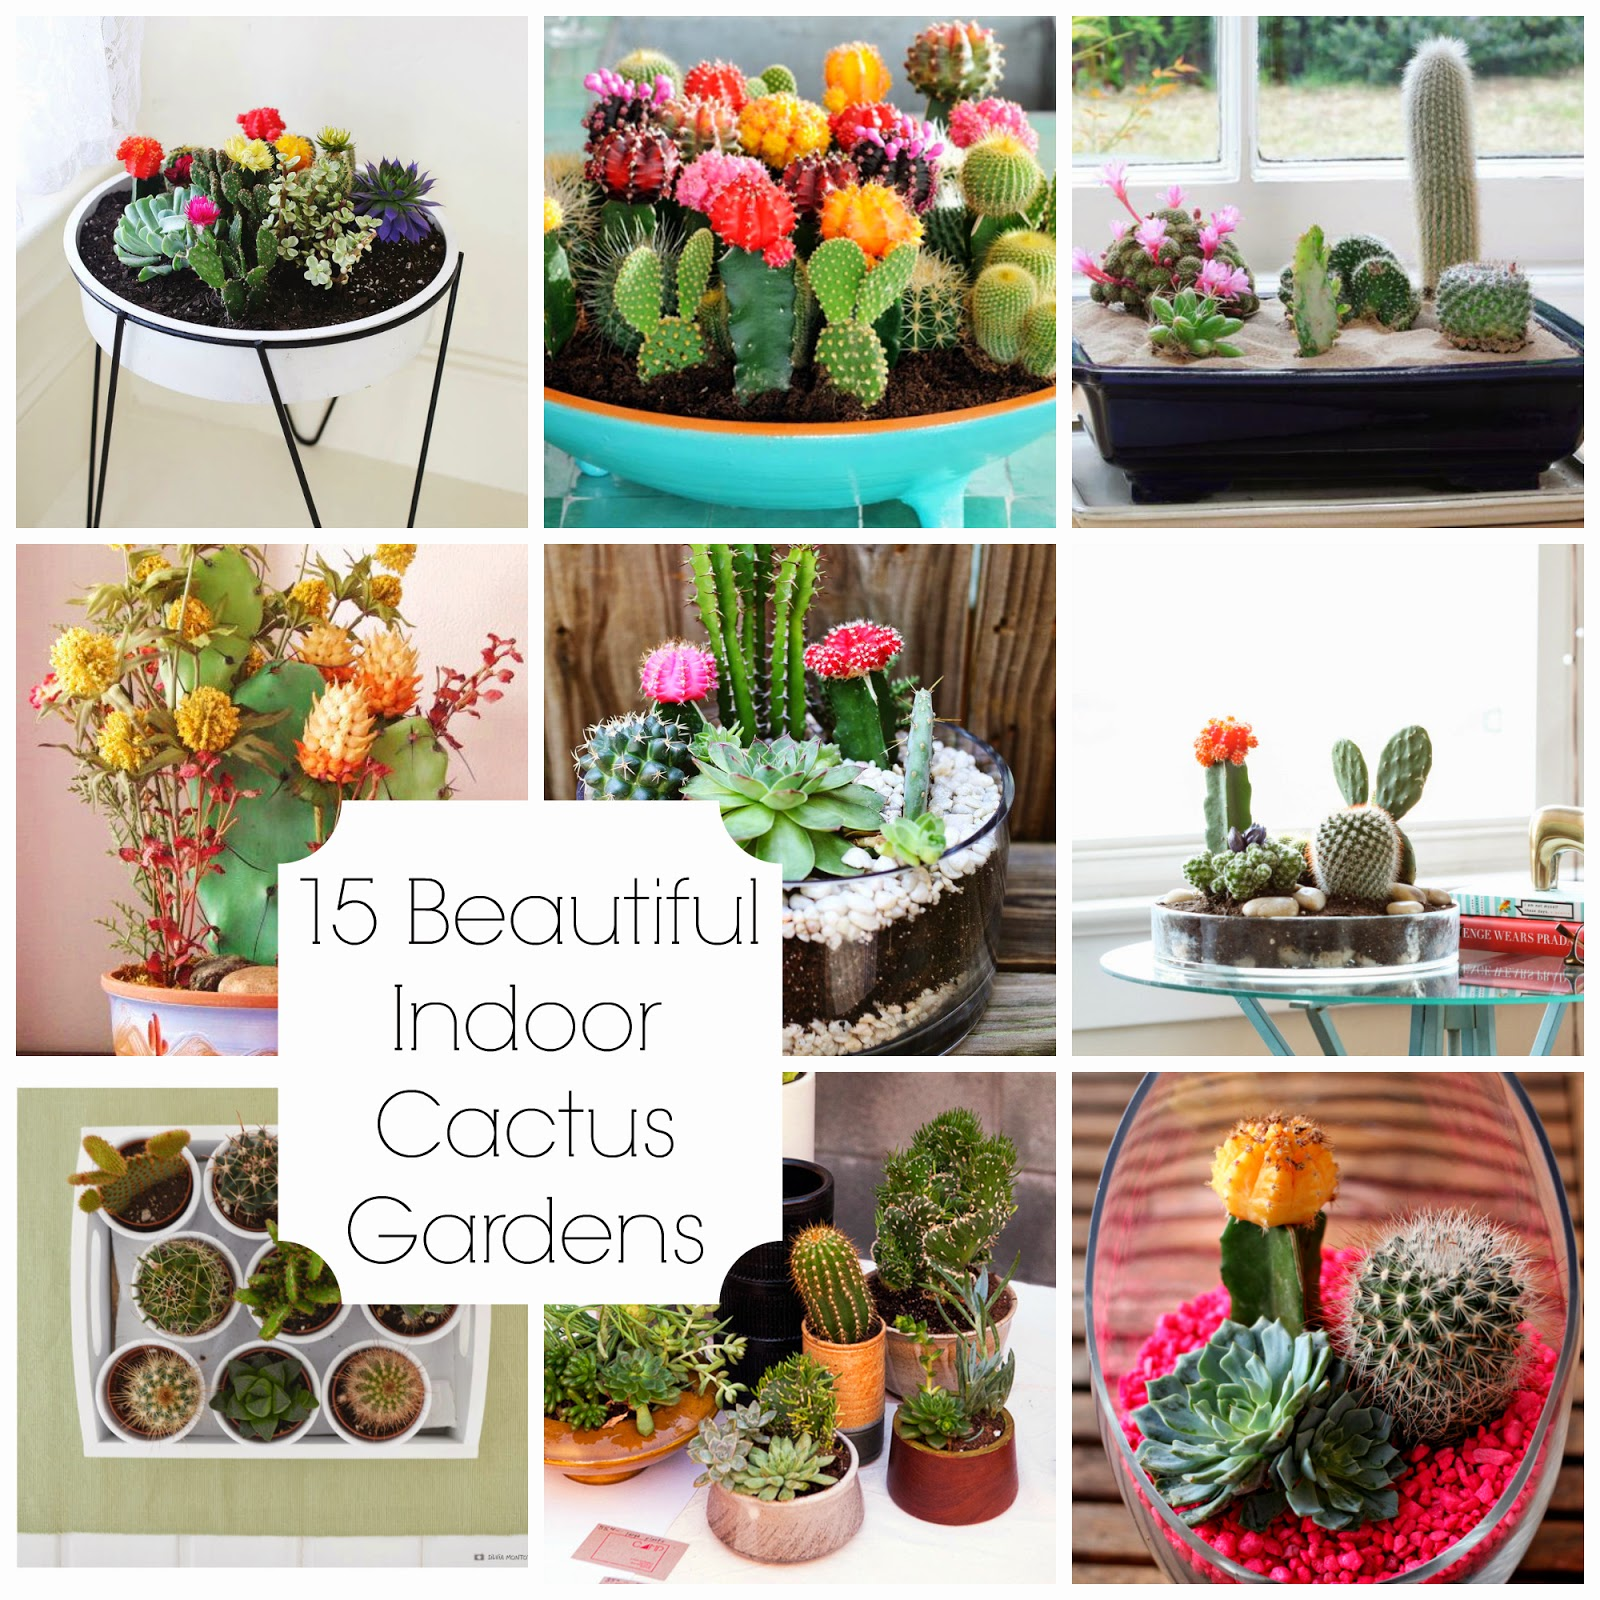 15 Beautiful Indoor Cactus Gardens